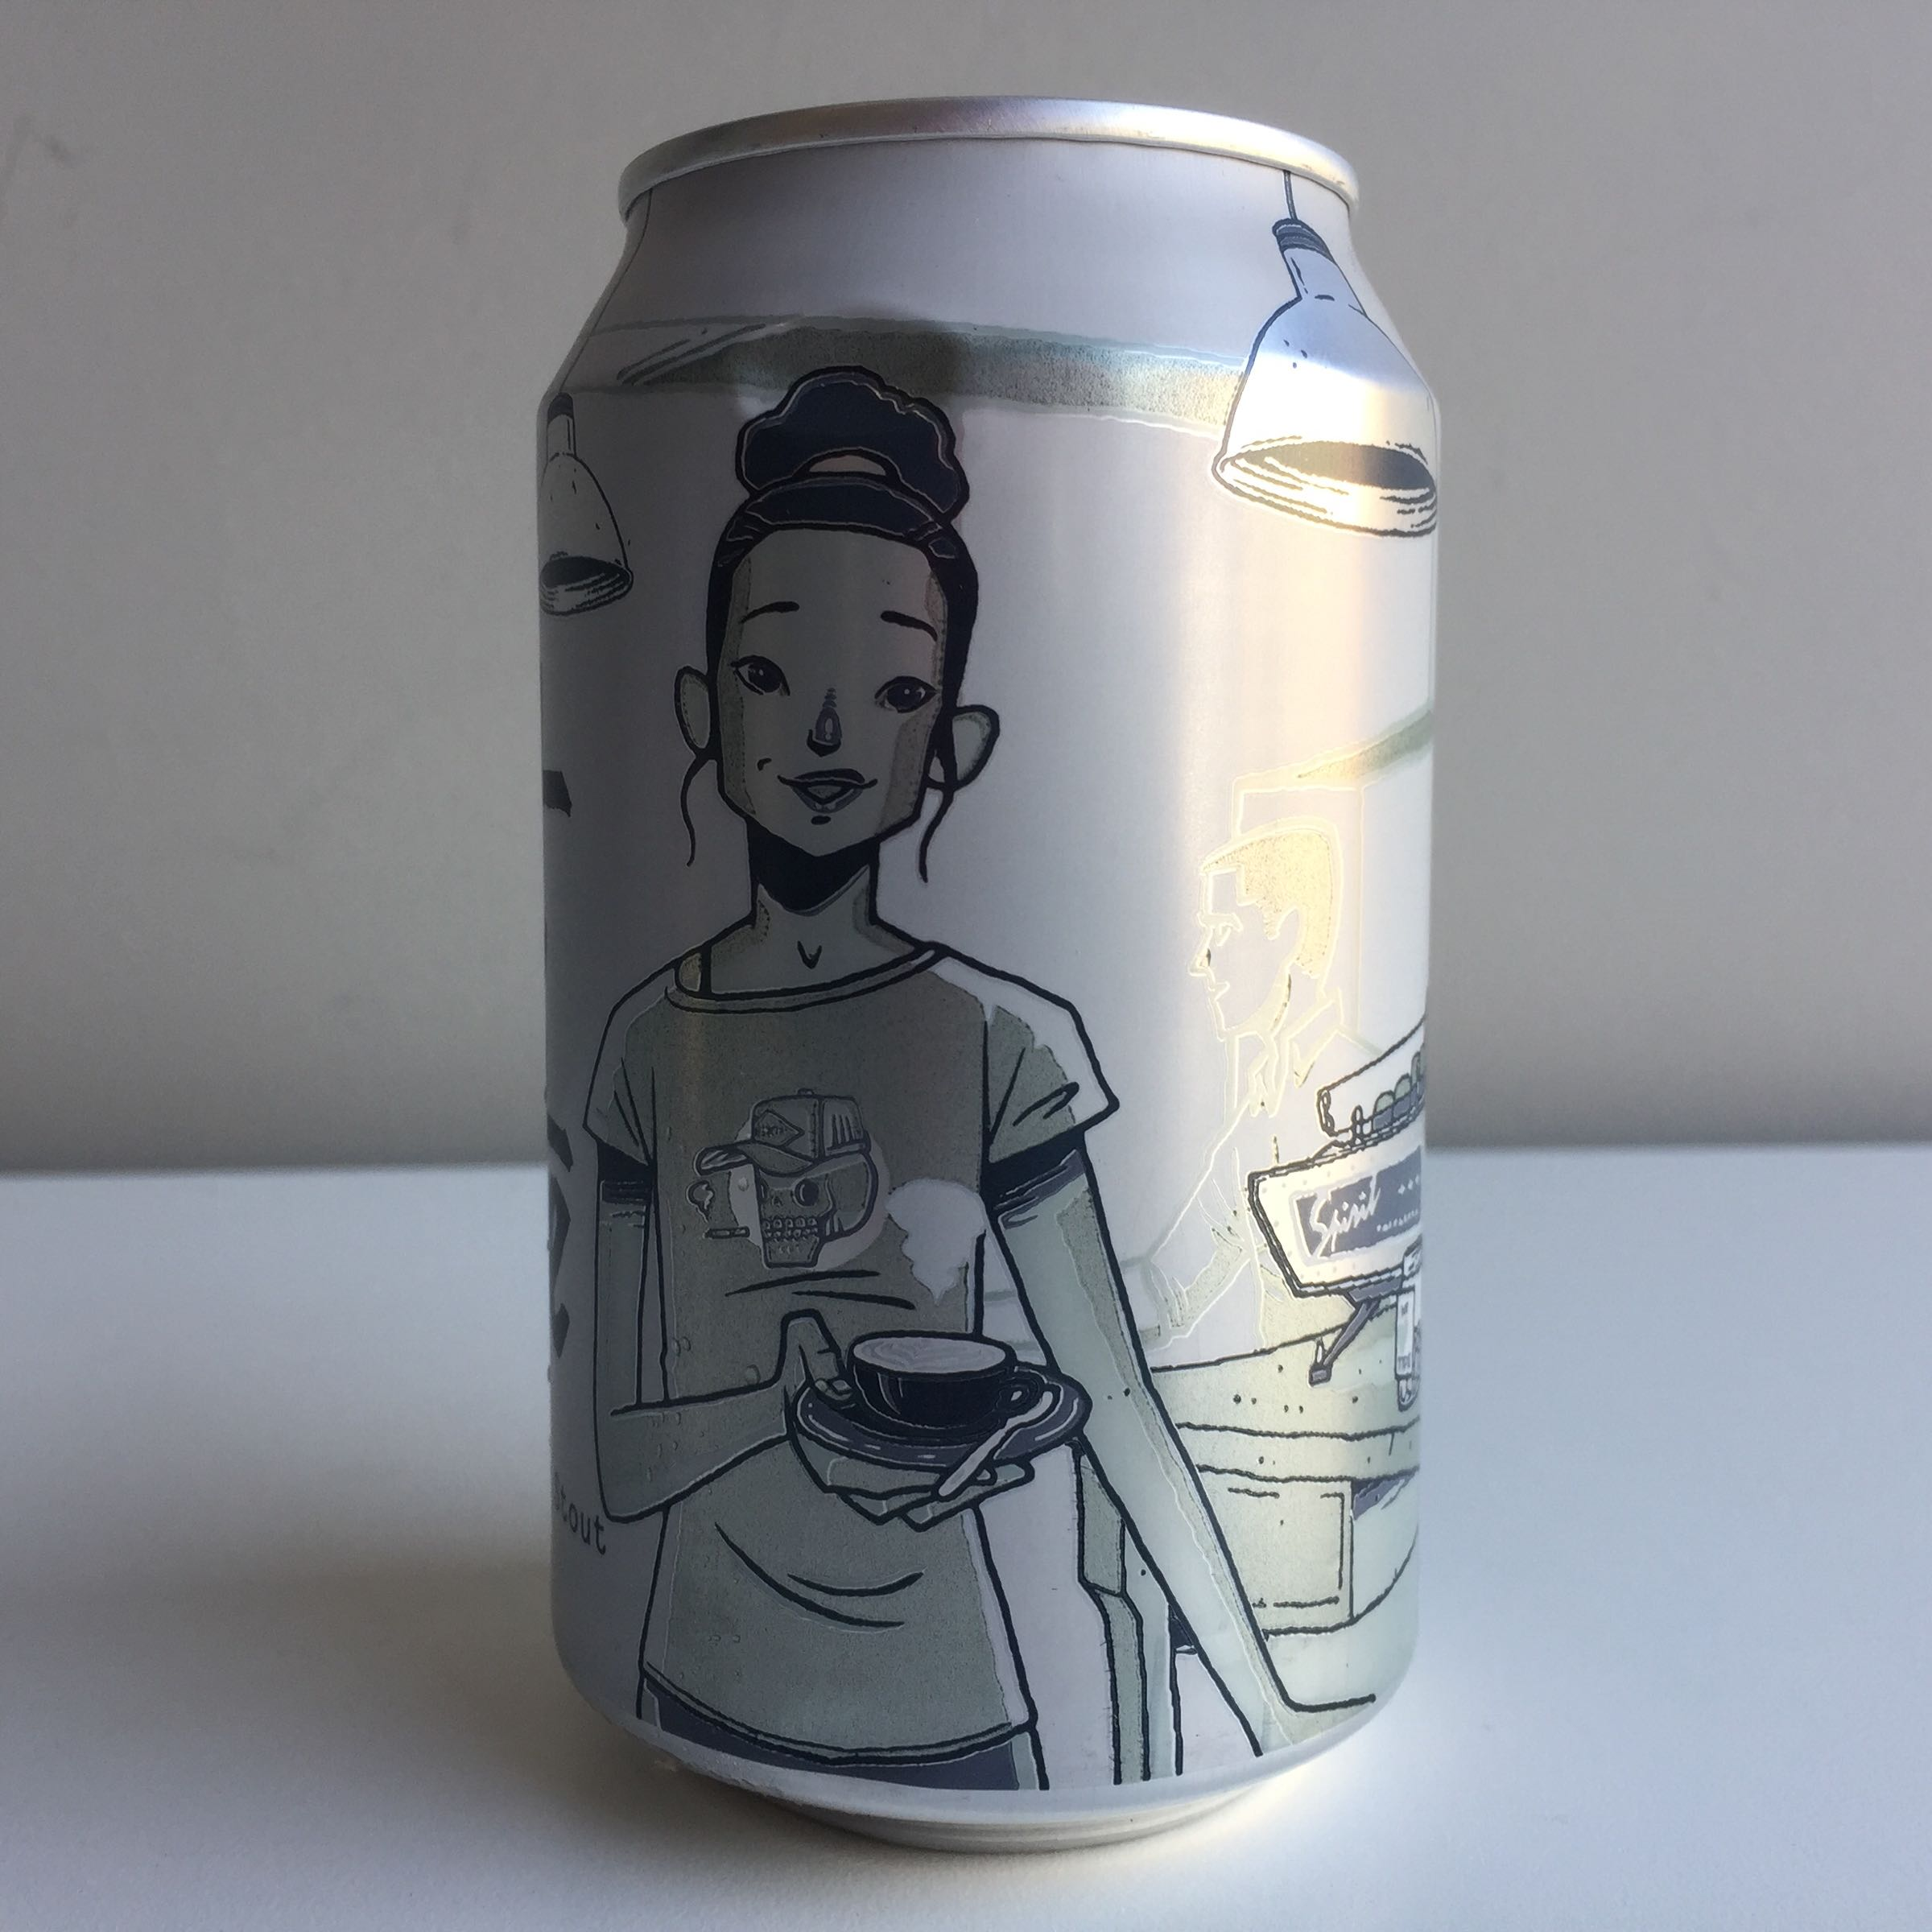 Alphabet Brewing Co. 'Flat White' 330ml 7.4% ABV